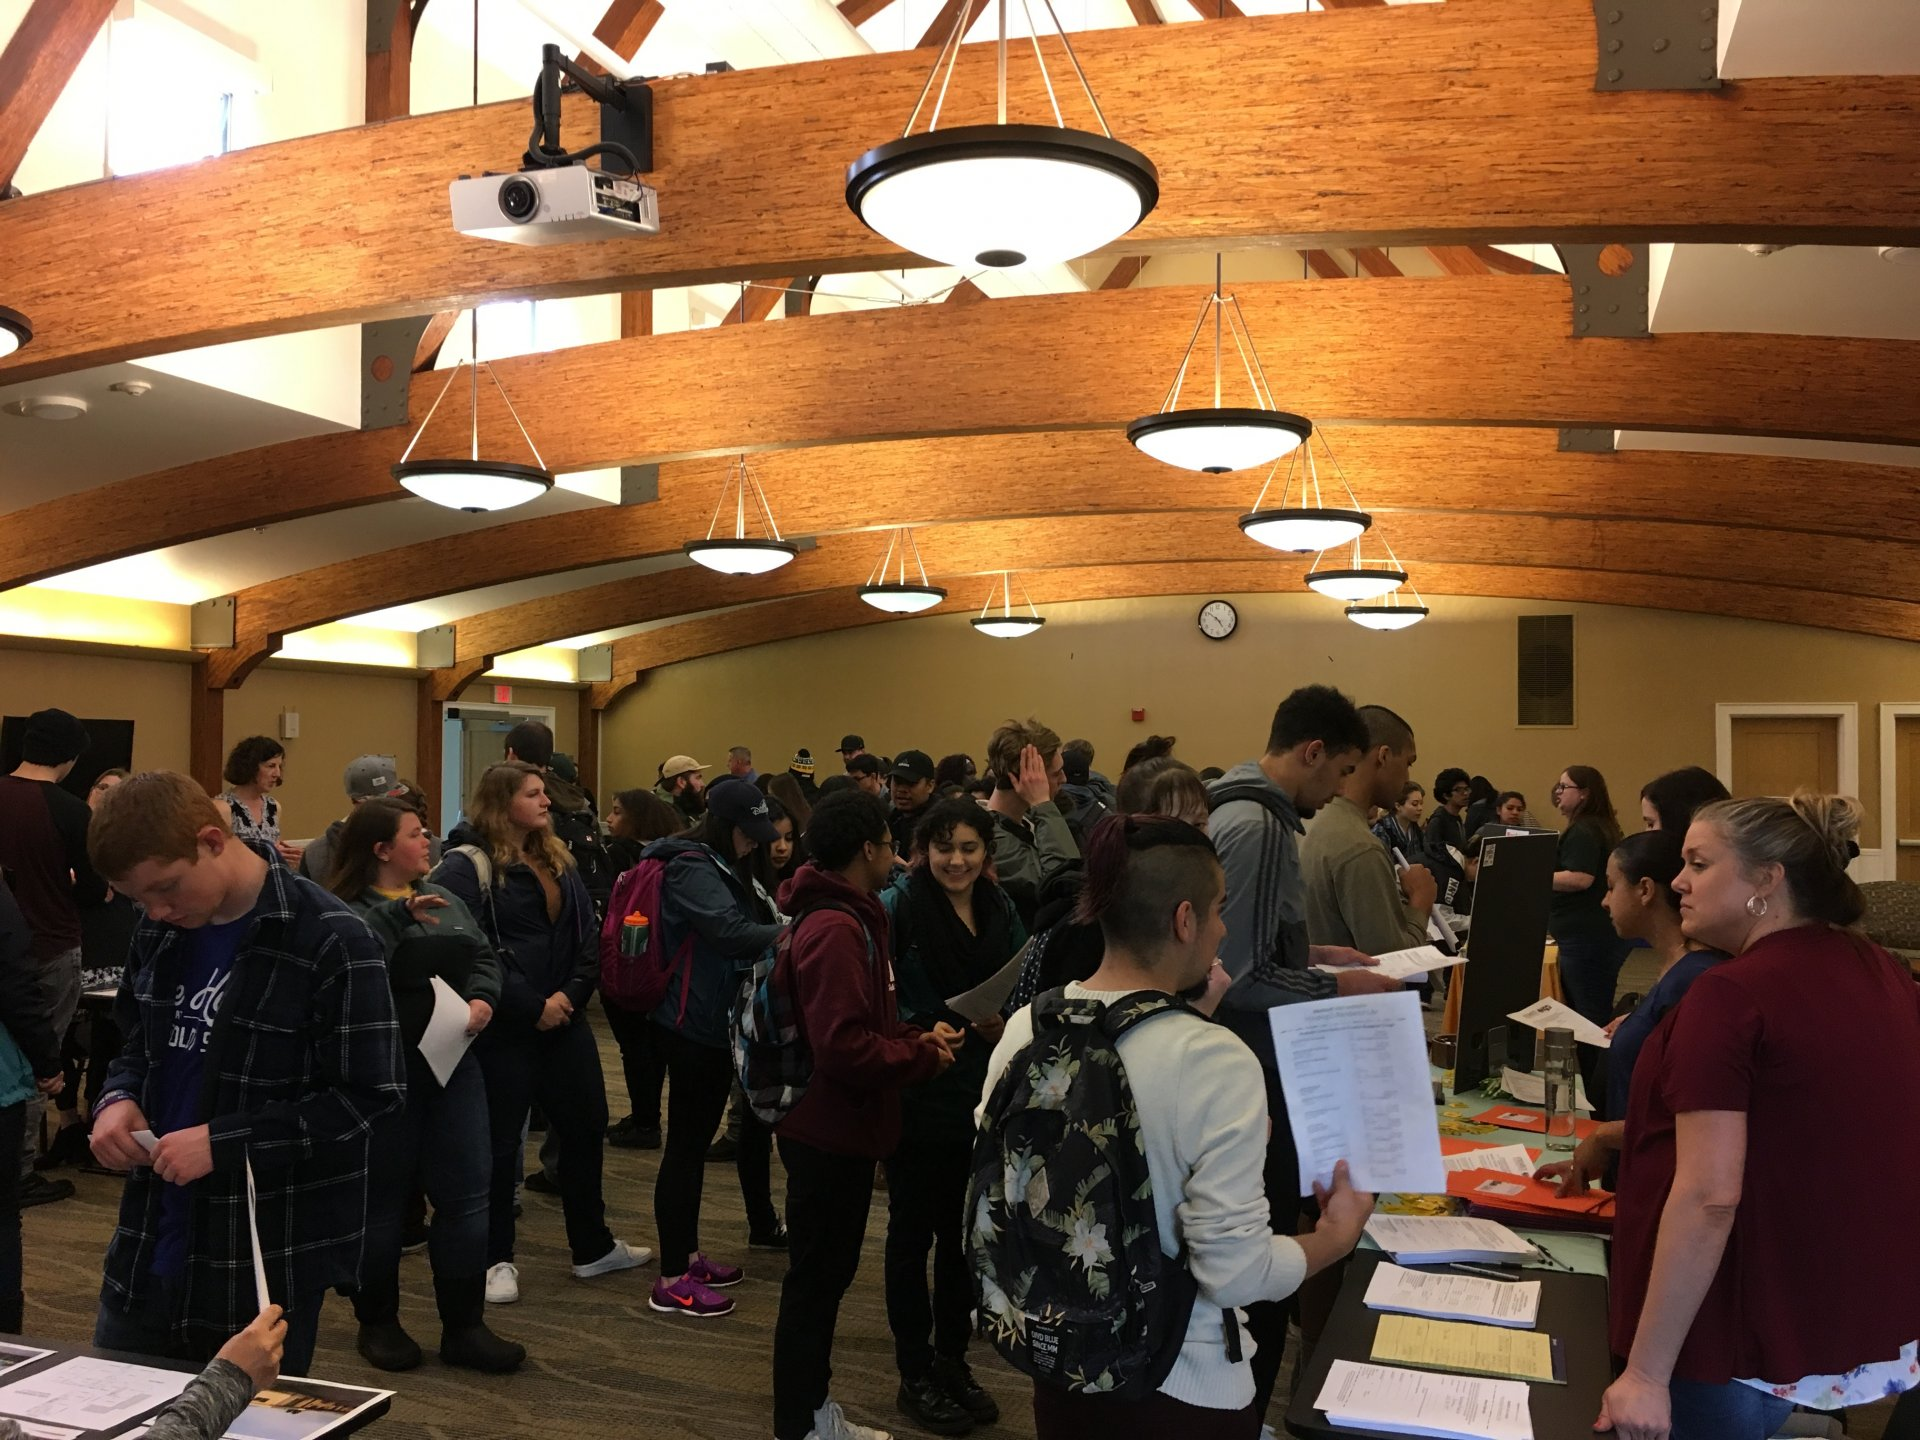 Students filled the Great Hall to meet with prospective property managers | Photo by Curran Daly